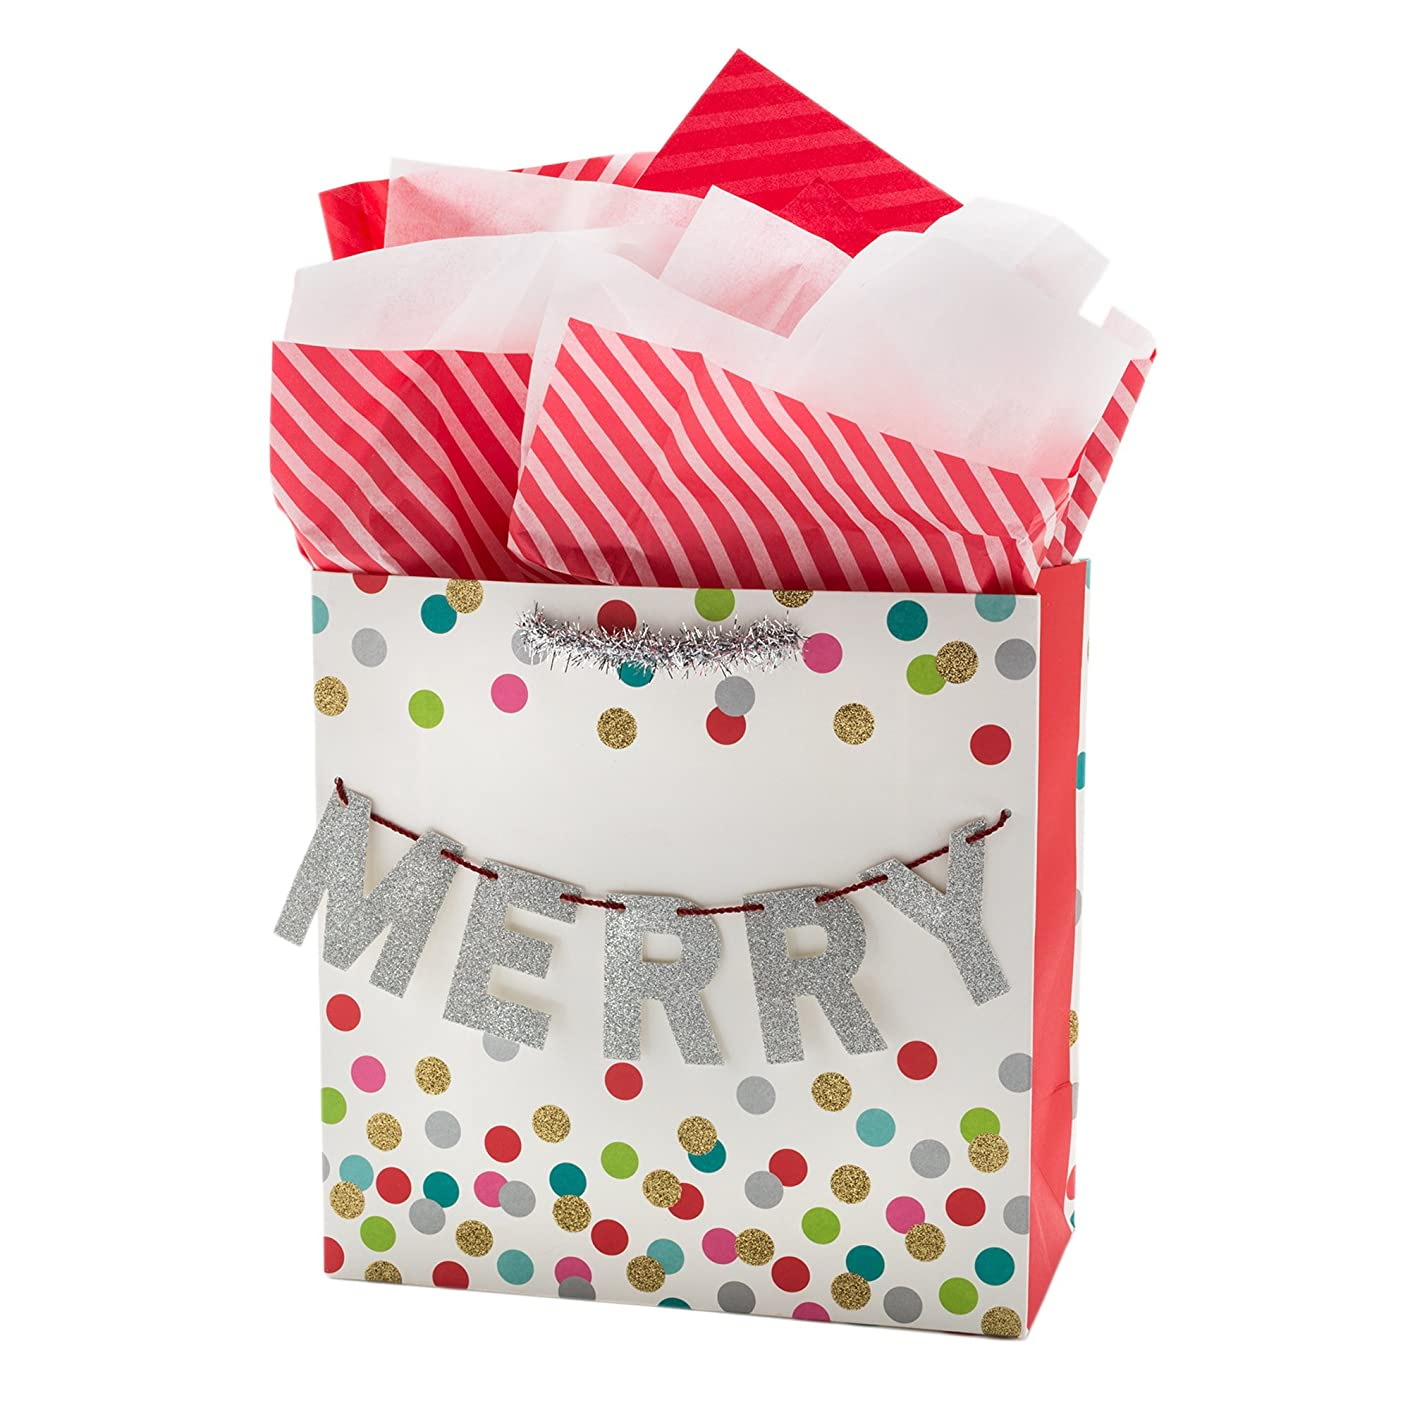 Hallmark Signature Large Christmas Gift Bag with Tissue Paper (White)